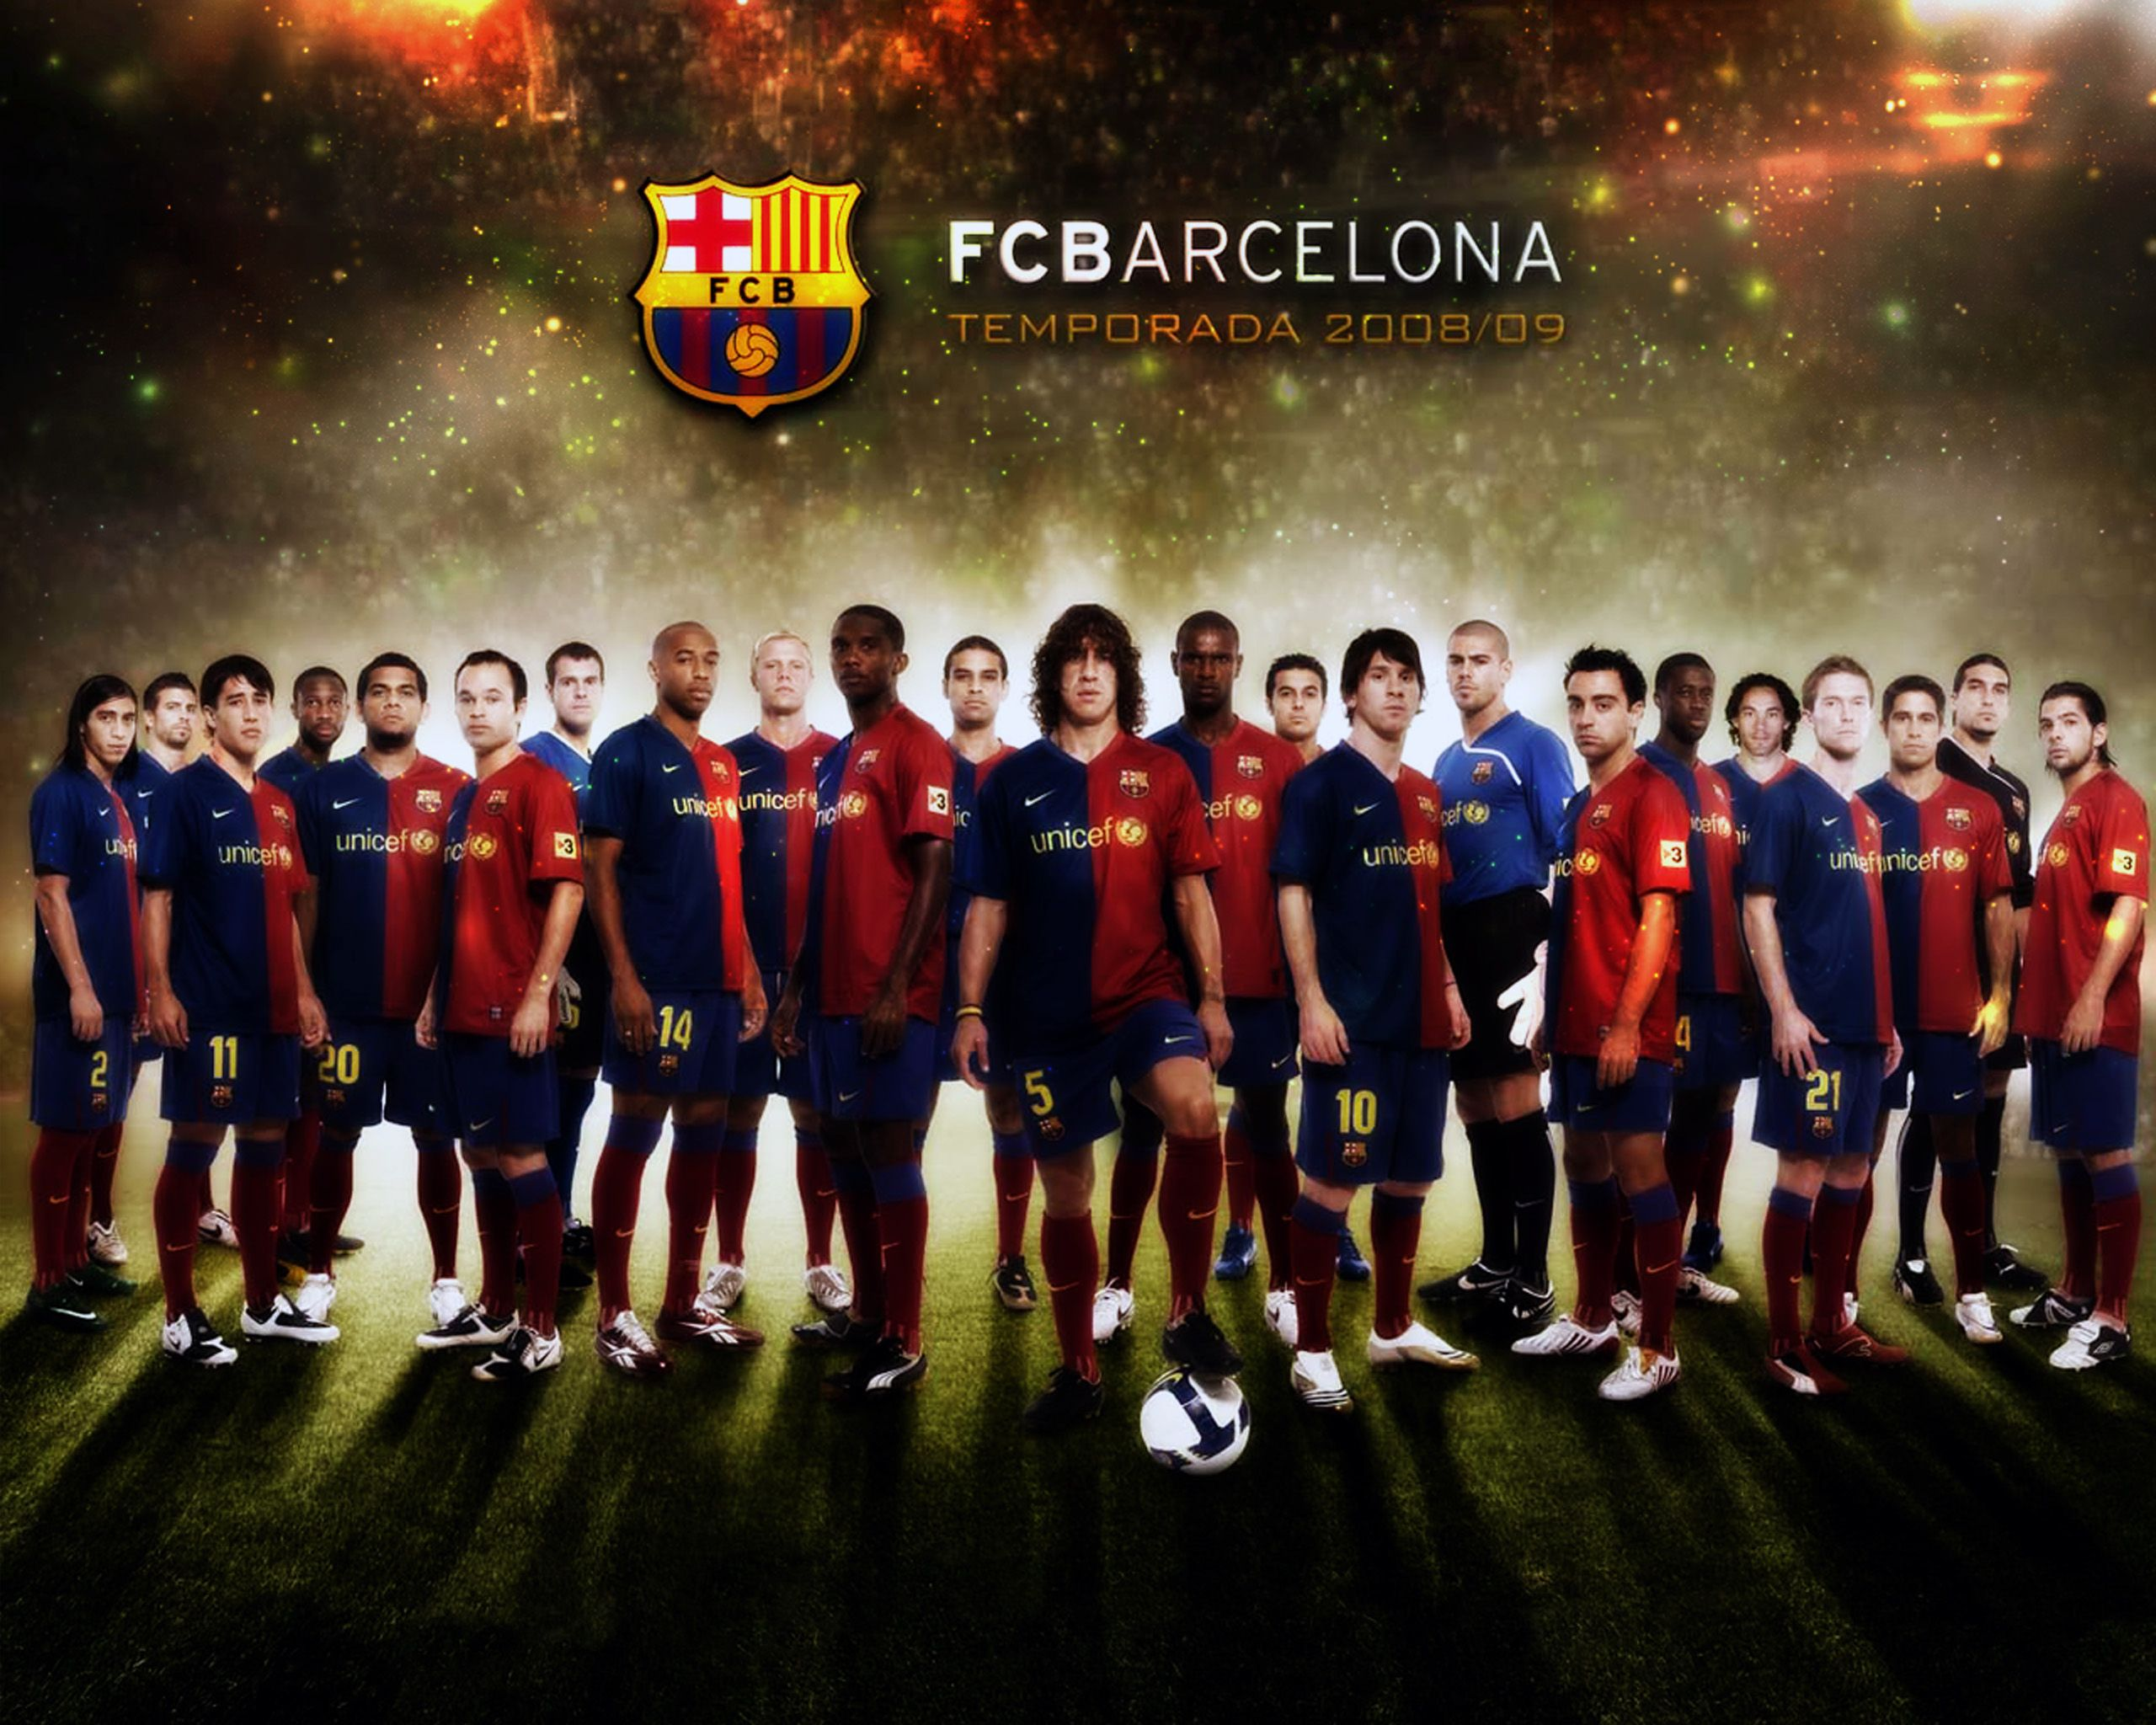 Fc barcelona football team wallpaperg 25602048 pixels fc barcelona fc football club by zuket creation voltagebd Image collections